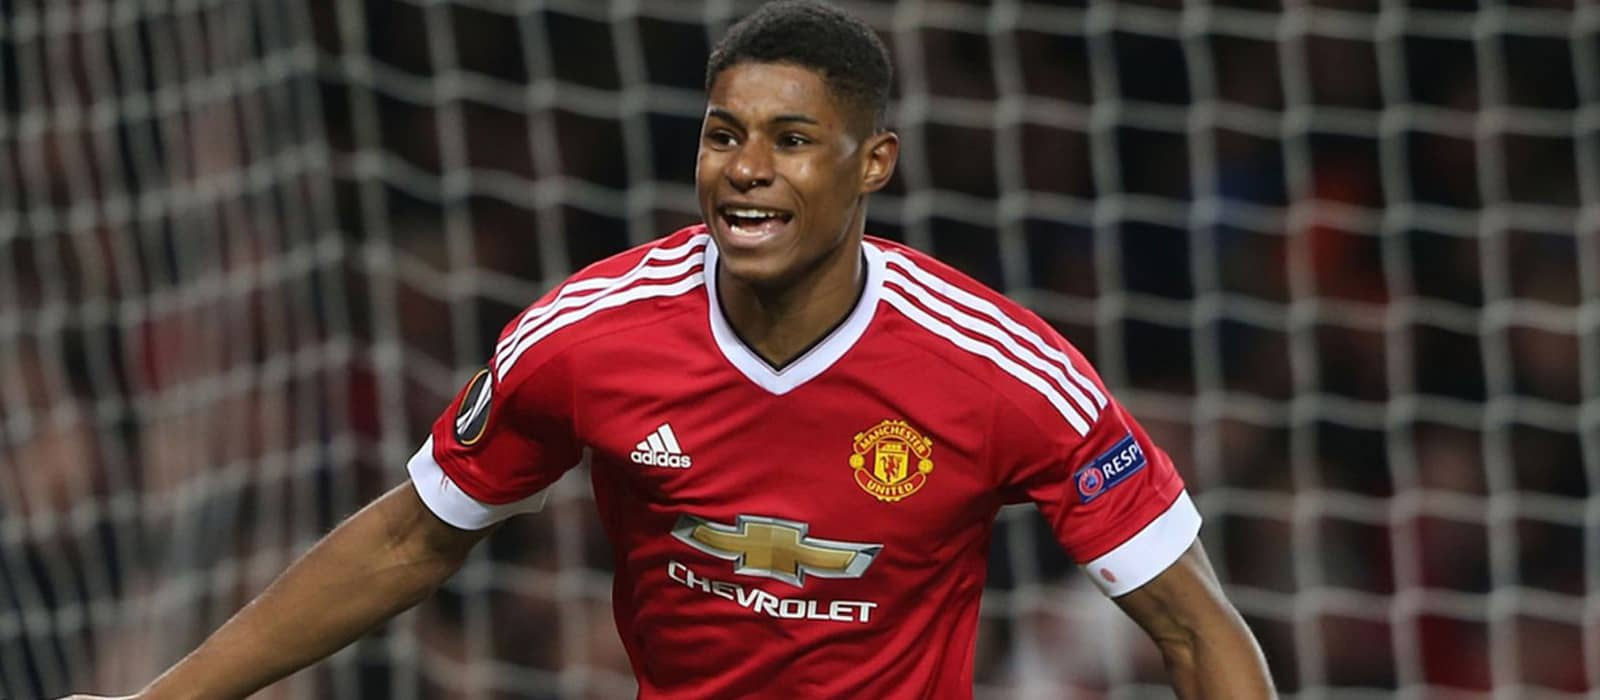 Manchester United fans impressed with Marcus Rashford